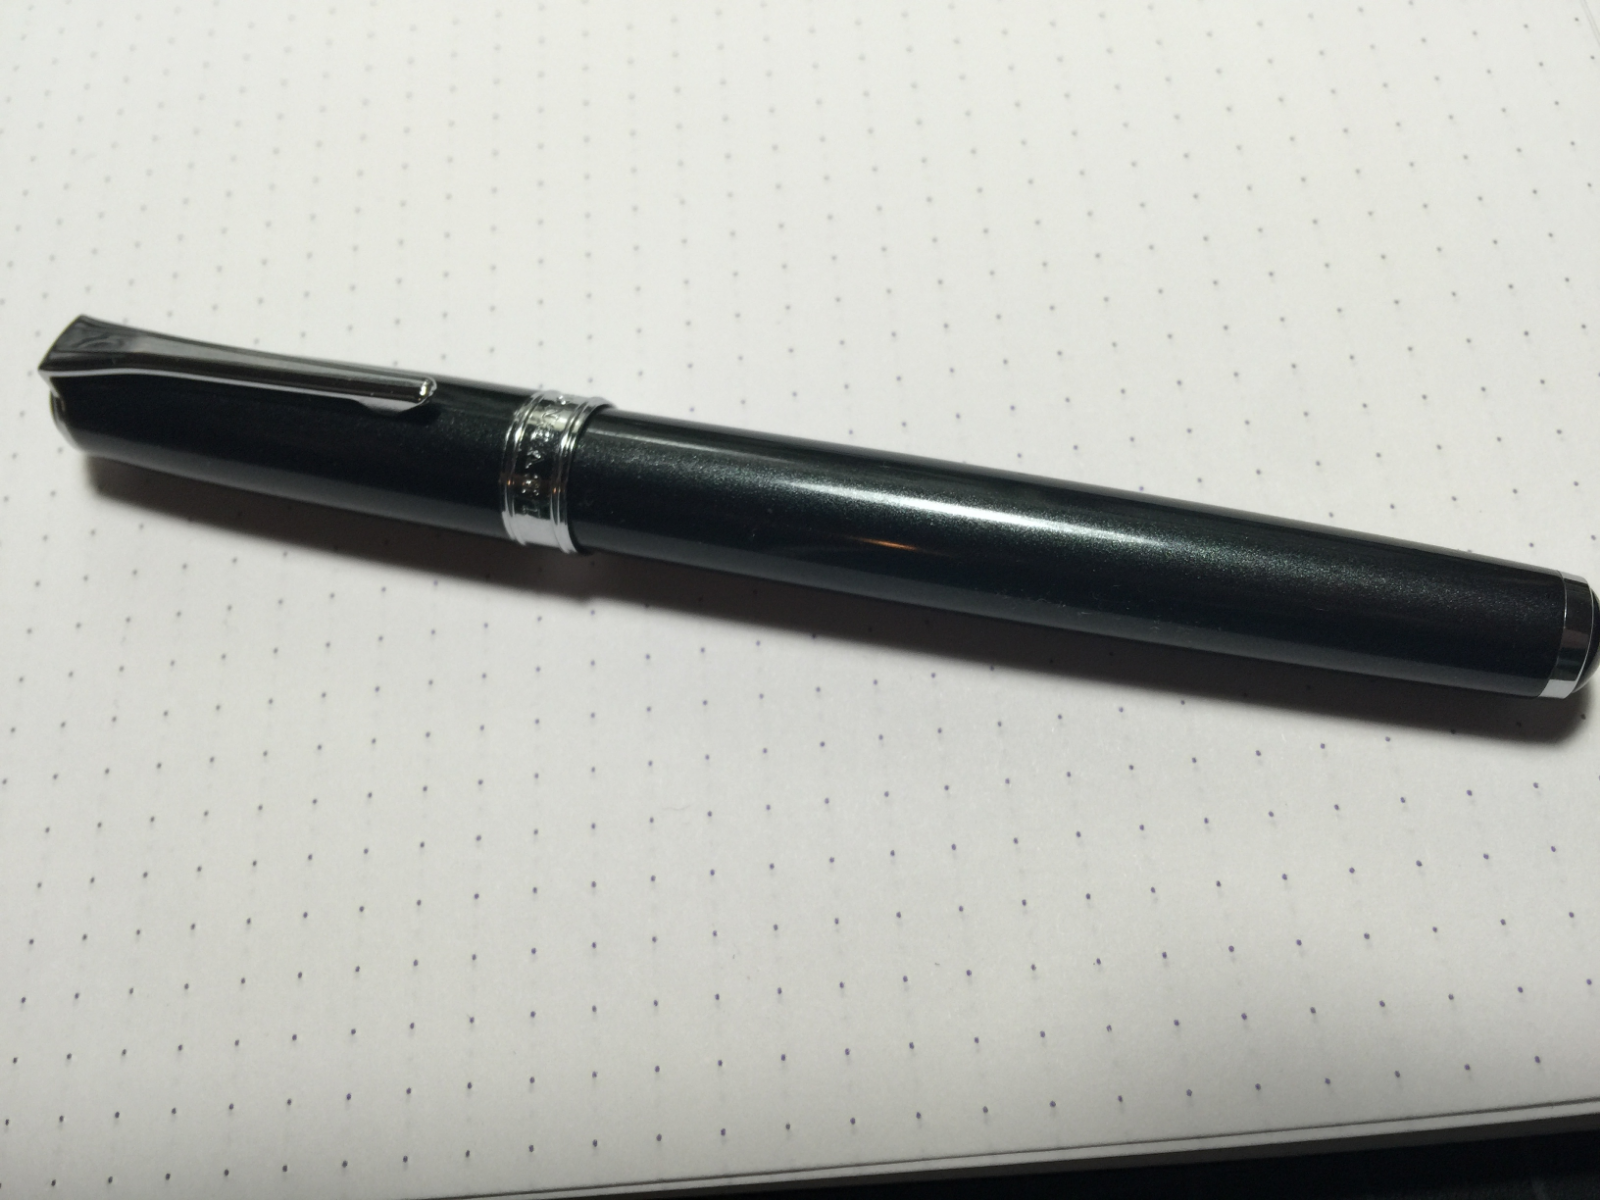 truewriter-full-pen